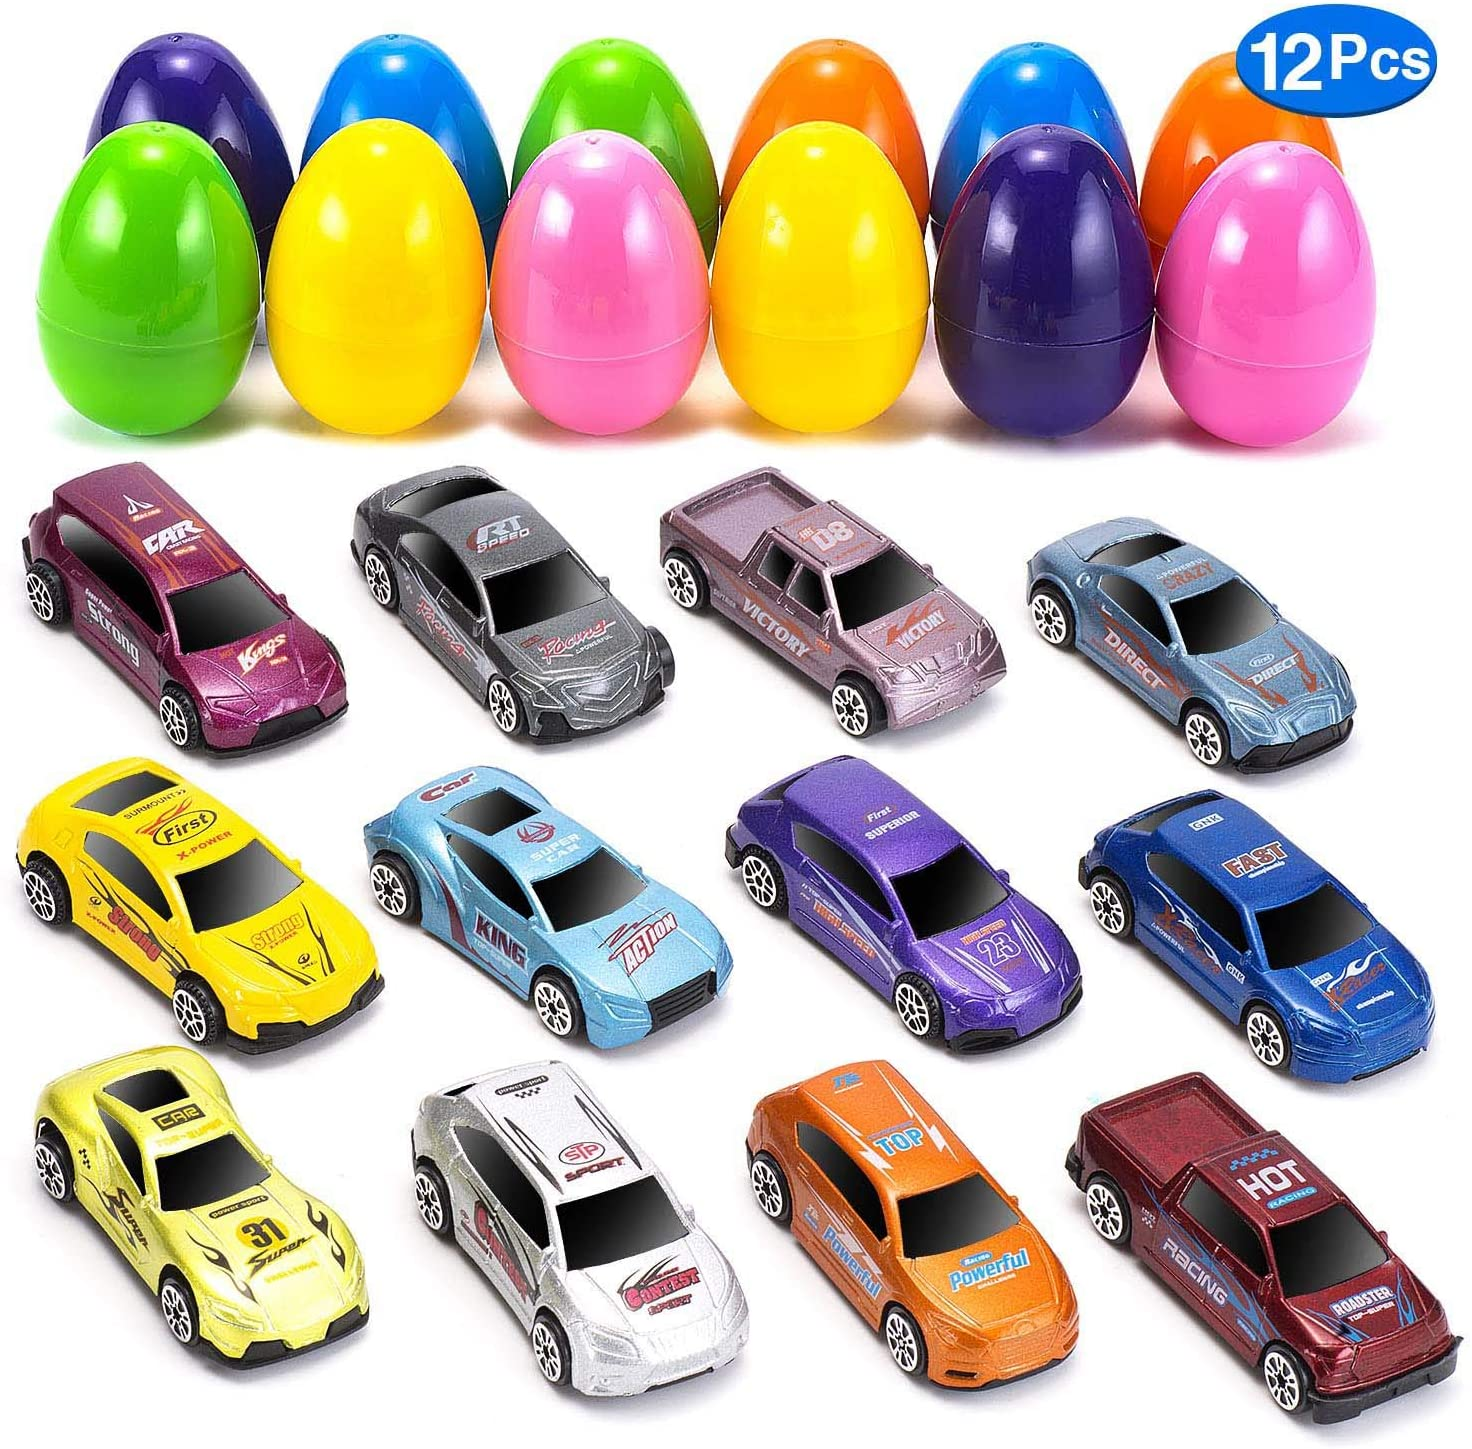 MONILON 12 Prefilled Easter Eggs with 12 Alloy Race Cars for Kids, Easter Eggs Hunt, Birthdays and Parties